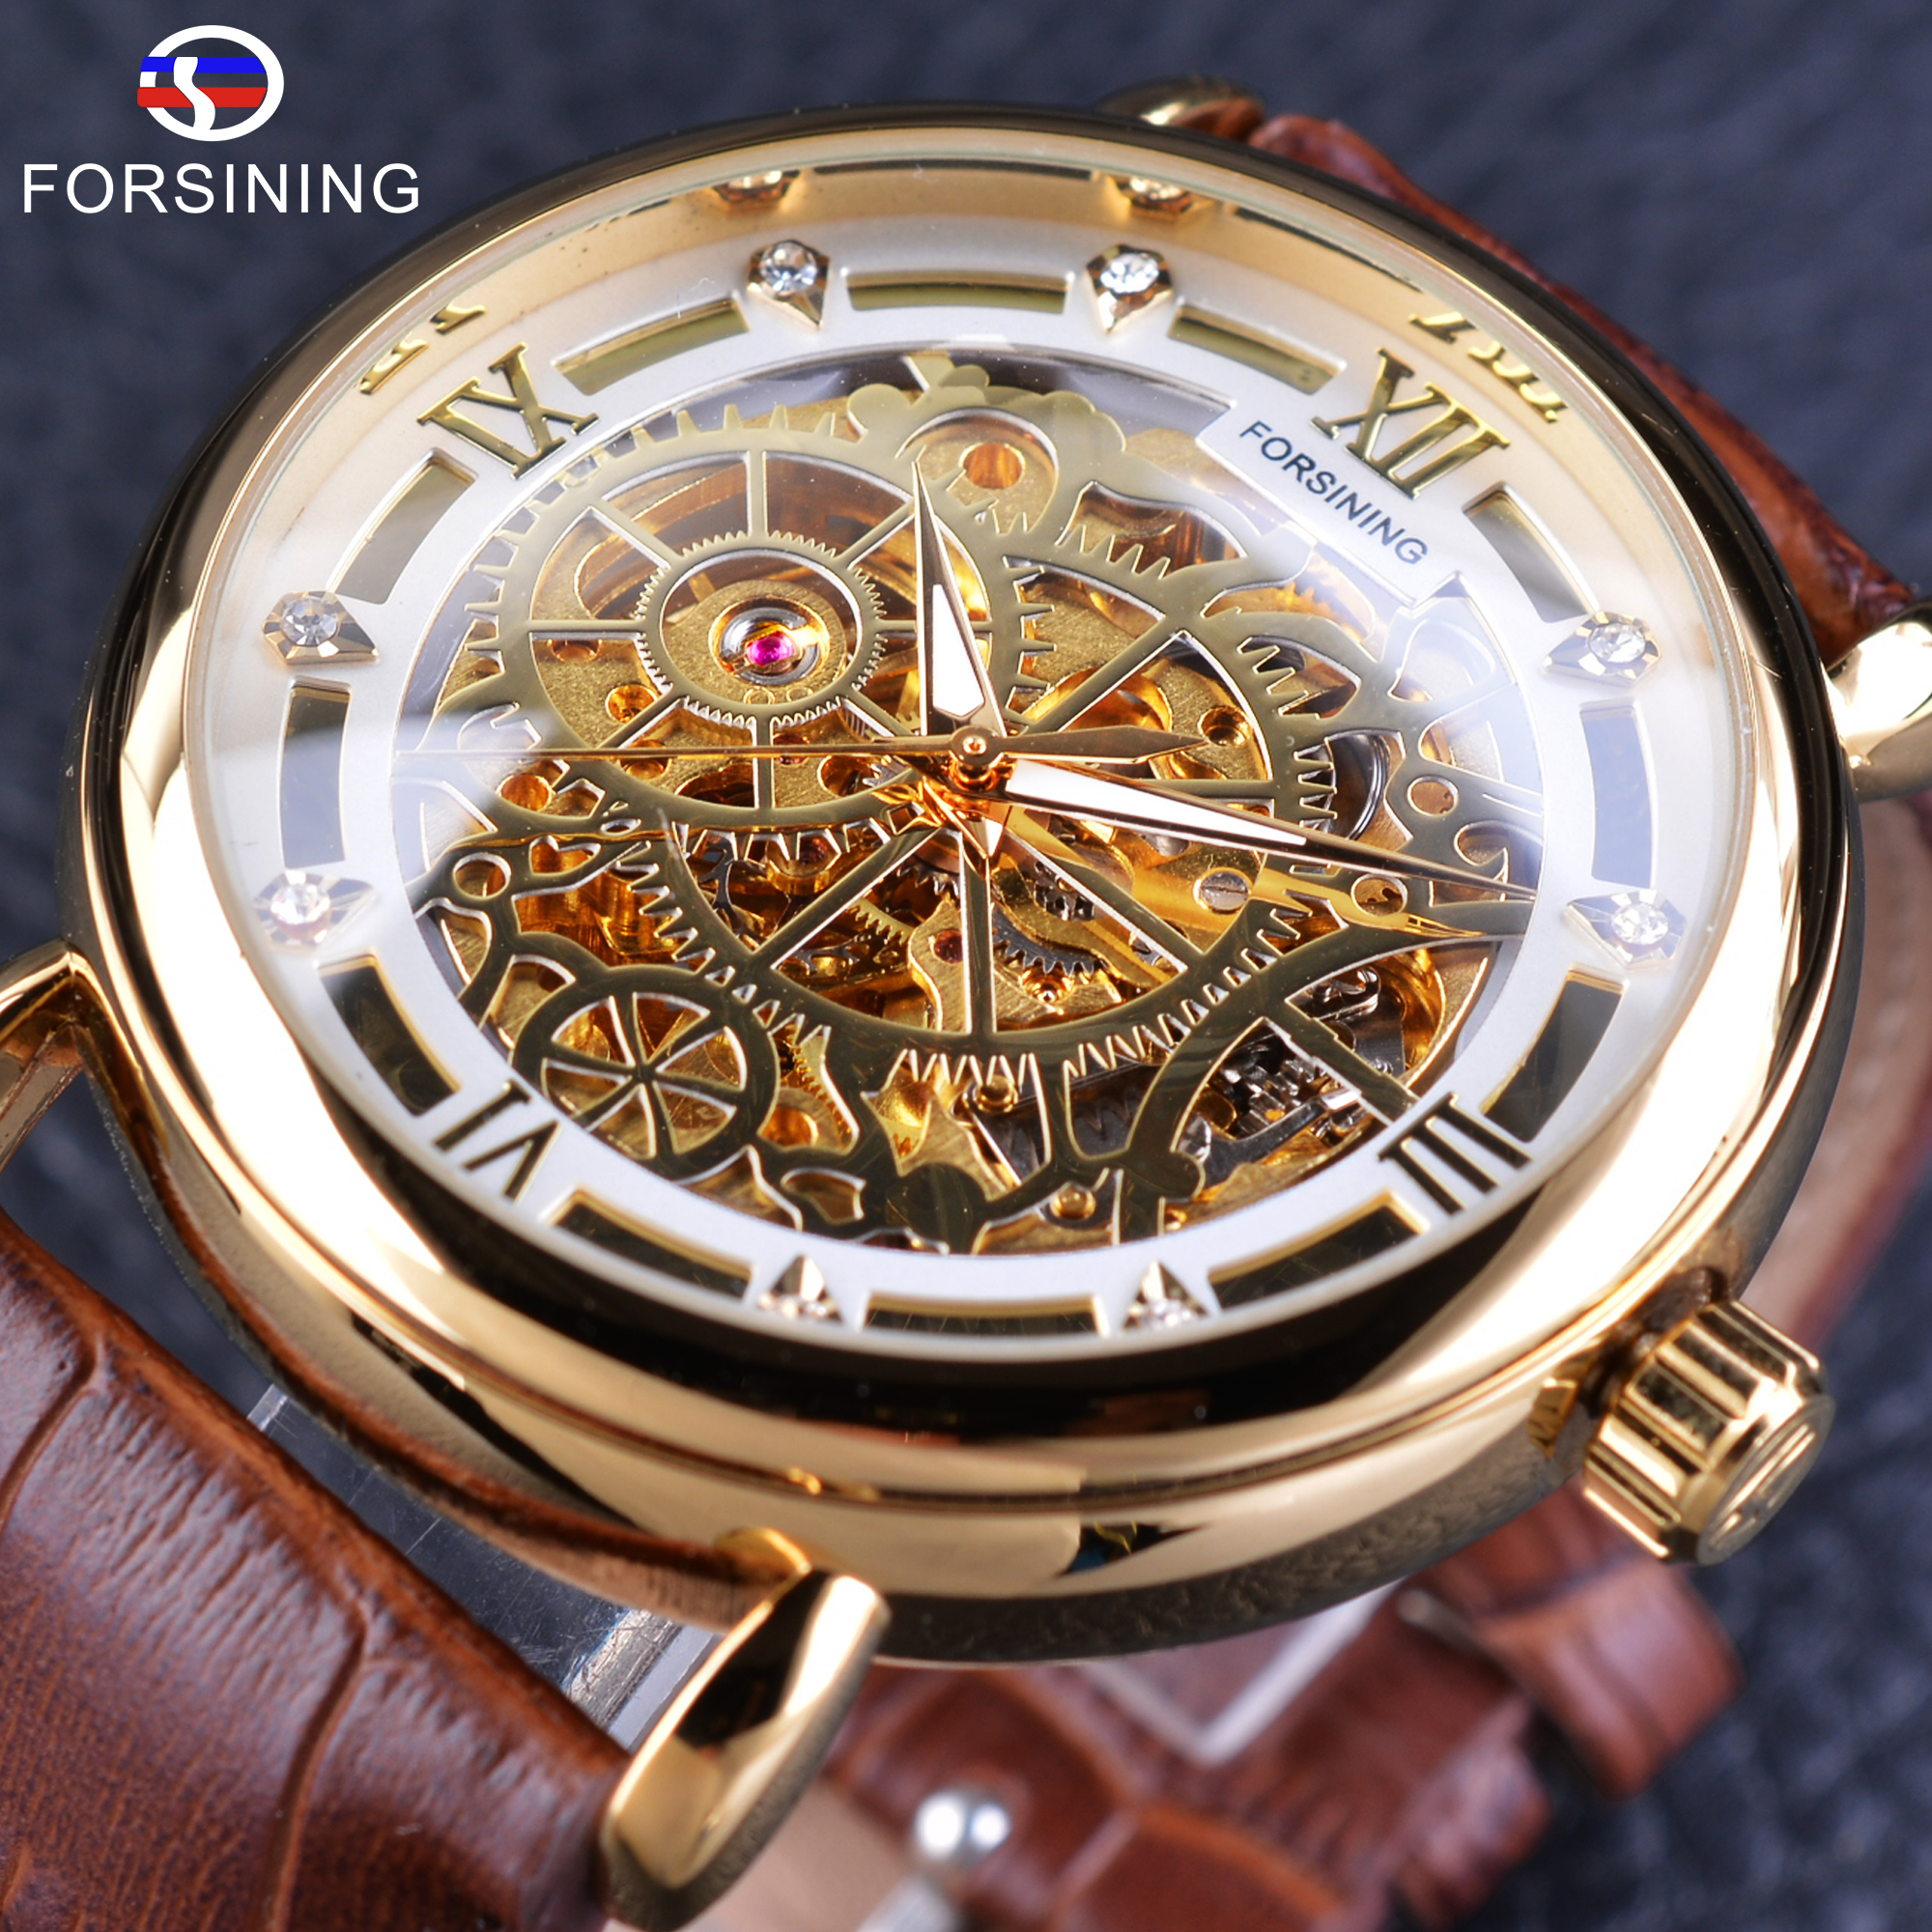 Forsining Men's Automatic Self-Wind Watch Golden Skeleton Wristwatch with Brown Genuine Leather Man Clock Luminous Hands k colouring women ladies automatic self wind watch hollow skeleton mechanical wristwatch for gift box